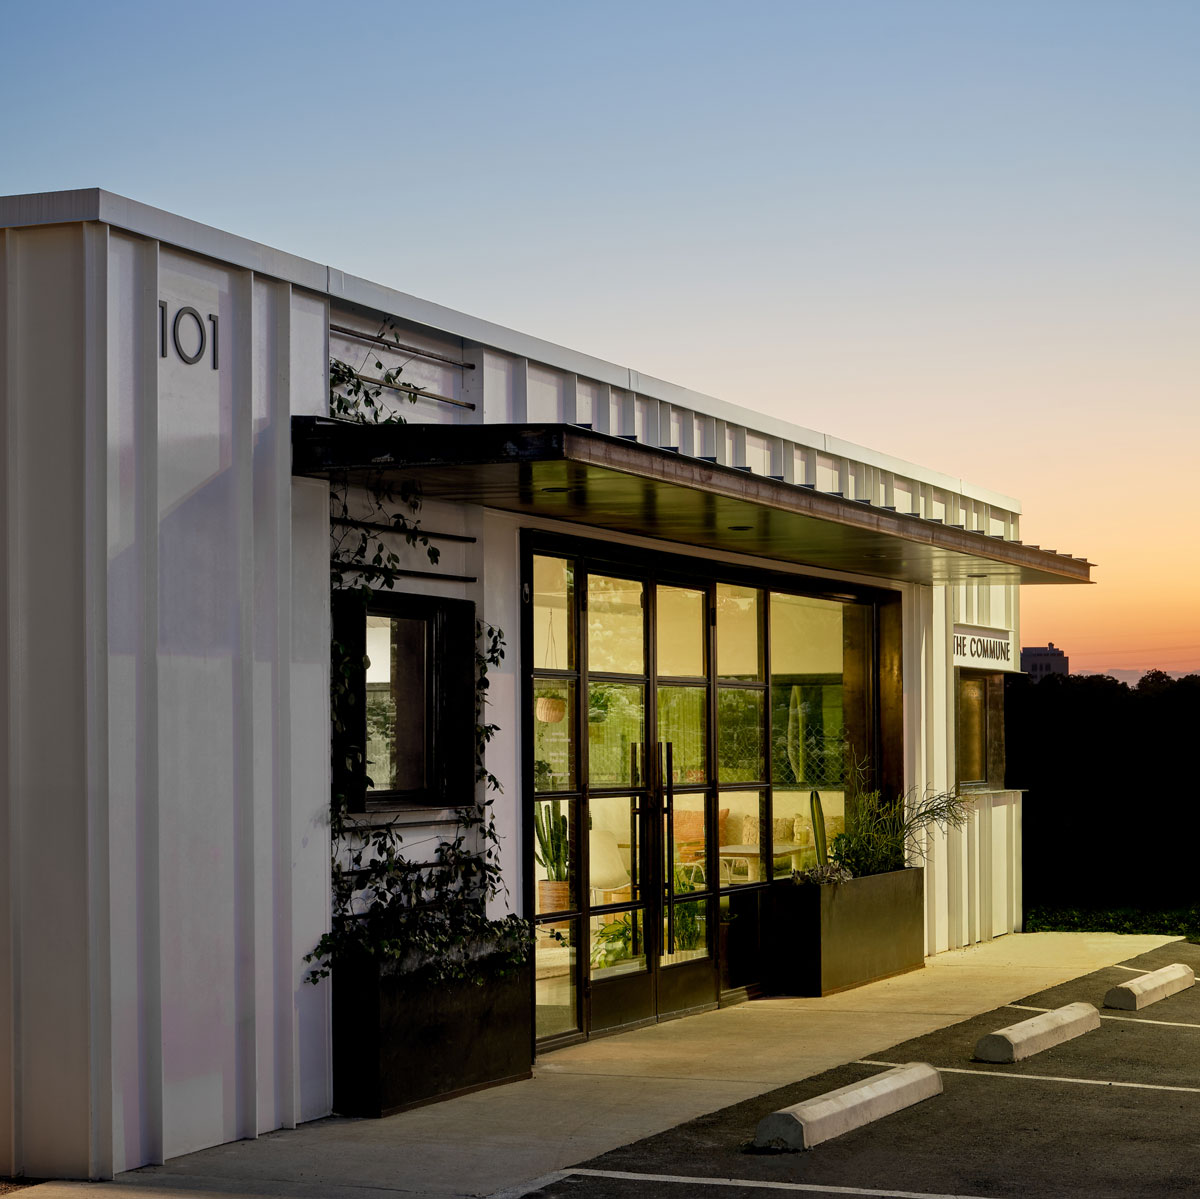 exterior of white metal coworking building with large windows as dusk